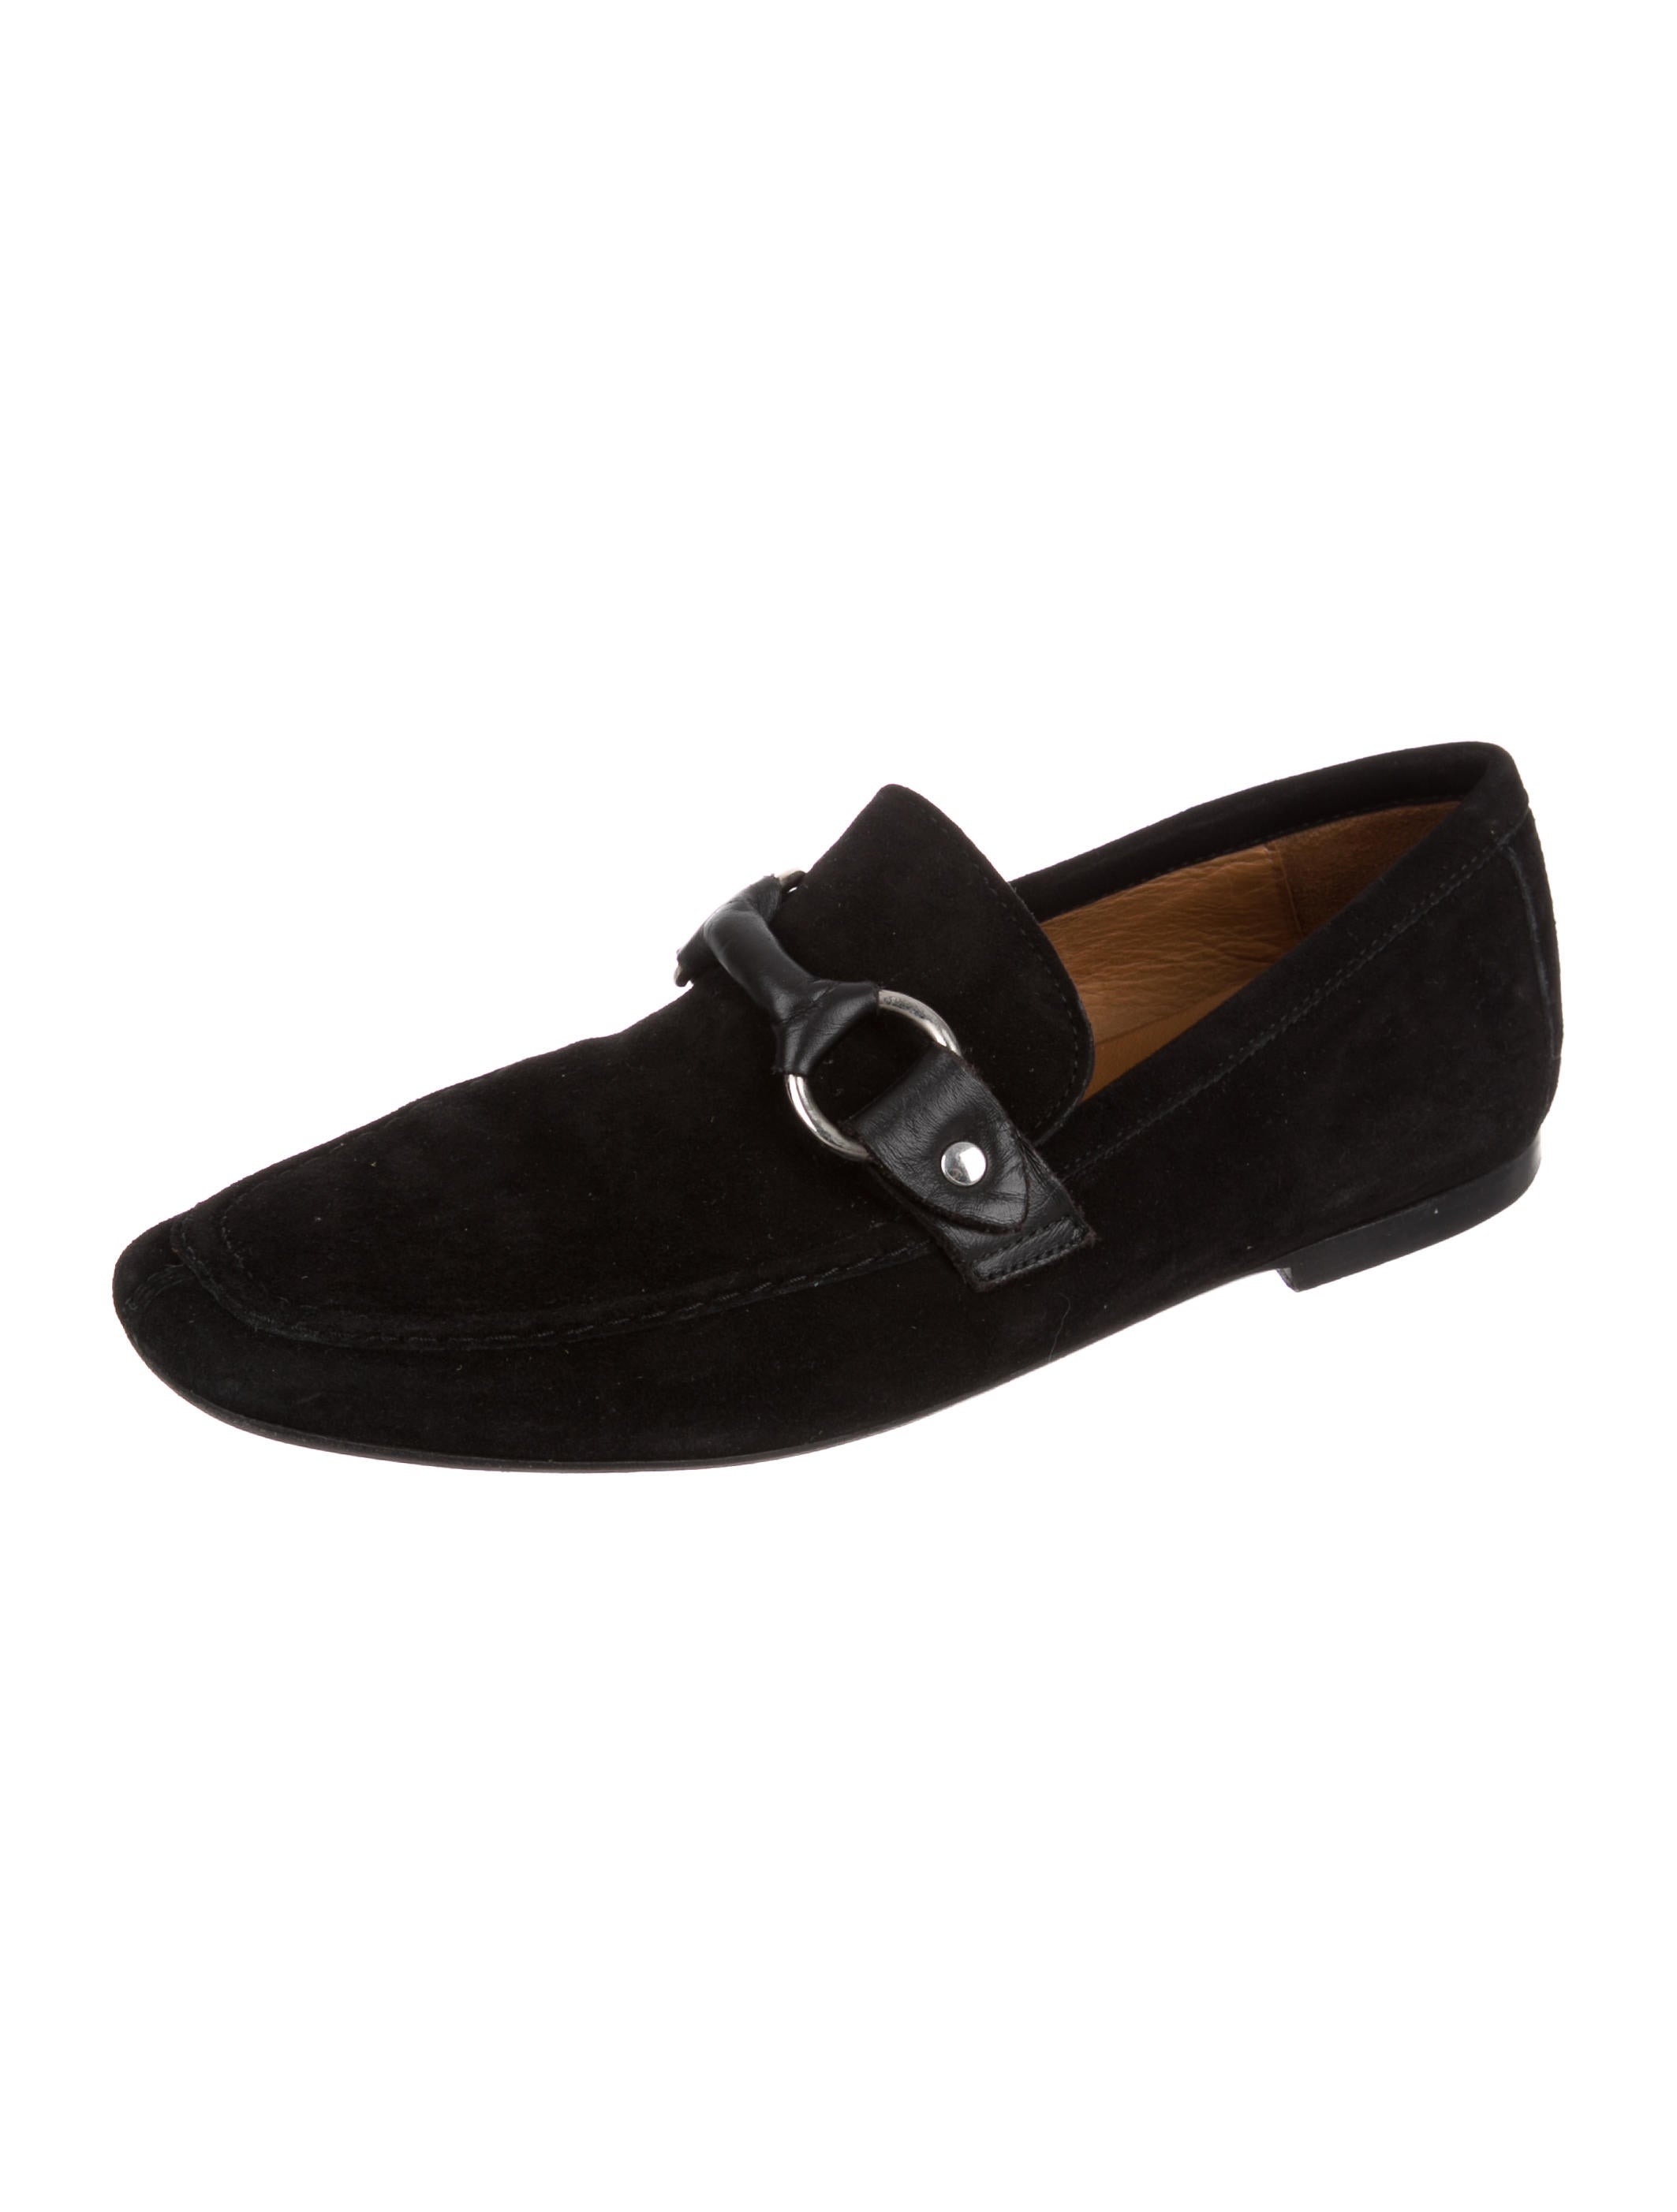 Isabel Marant Suede Square-Toe Loafers free shipping sale online f4HEiZXkO